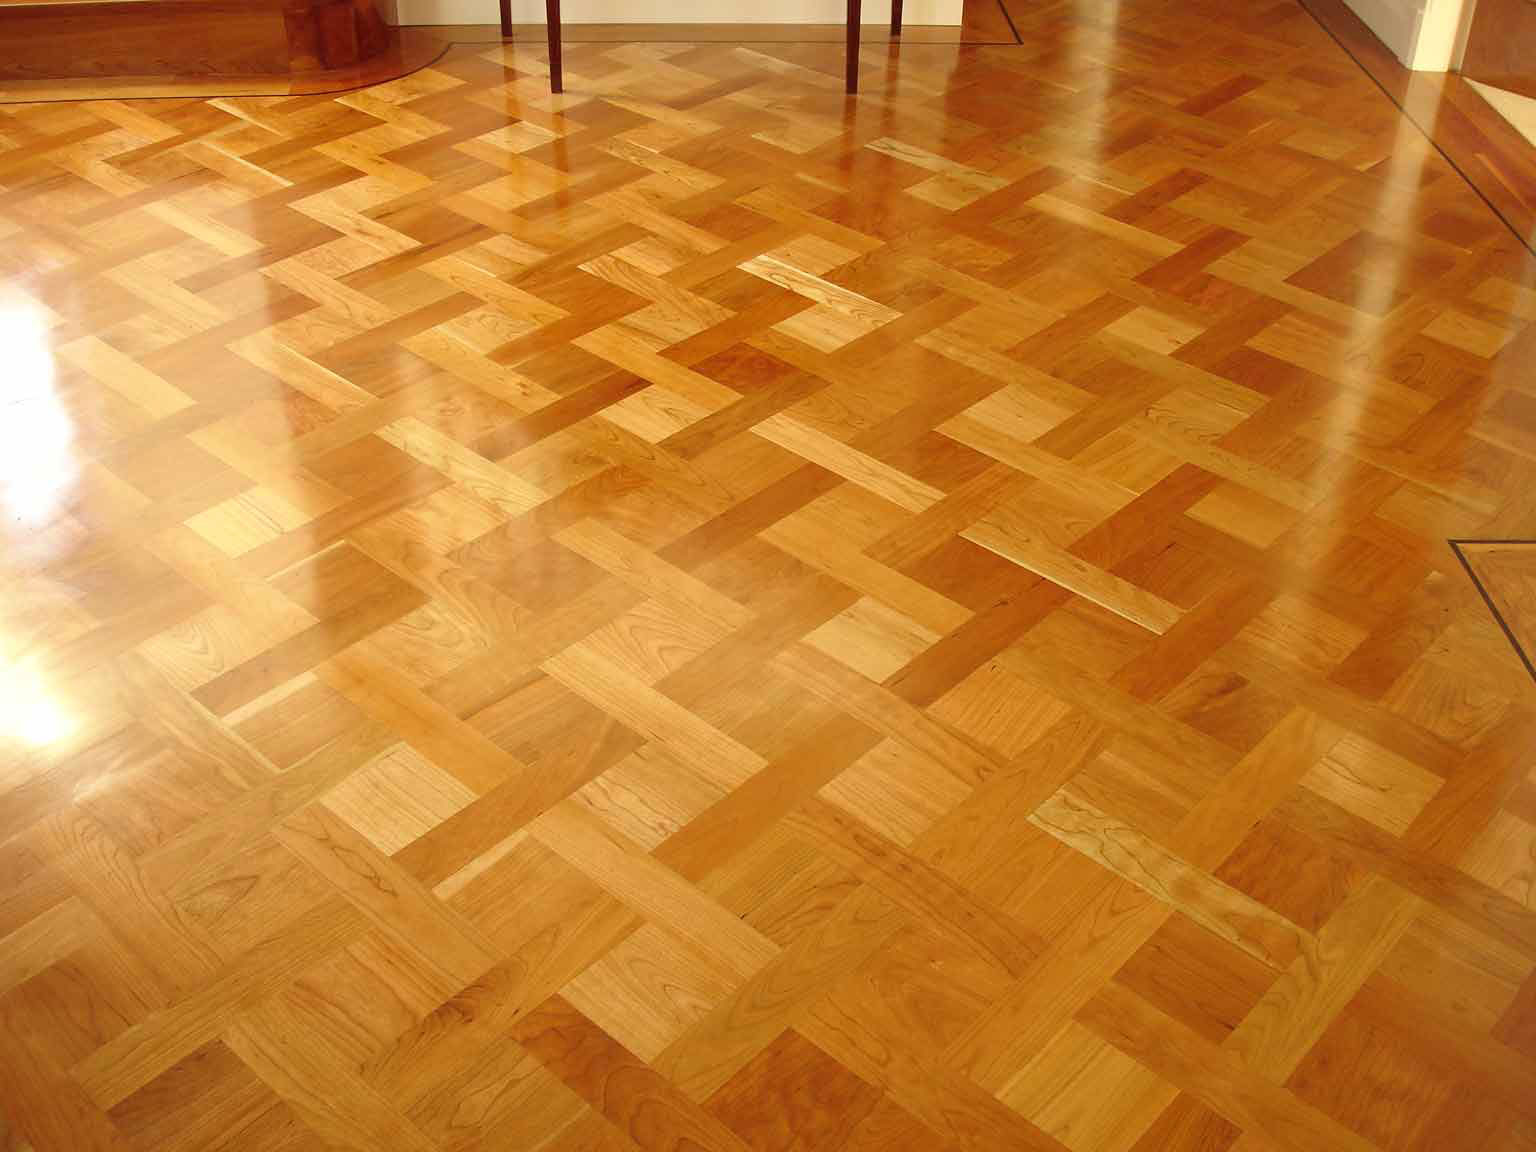 Wood flooring ideas design wood flooring ideas home trendy Wood floor design ideas pictures